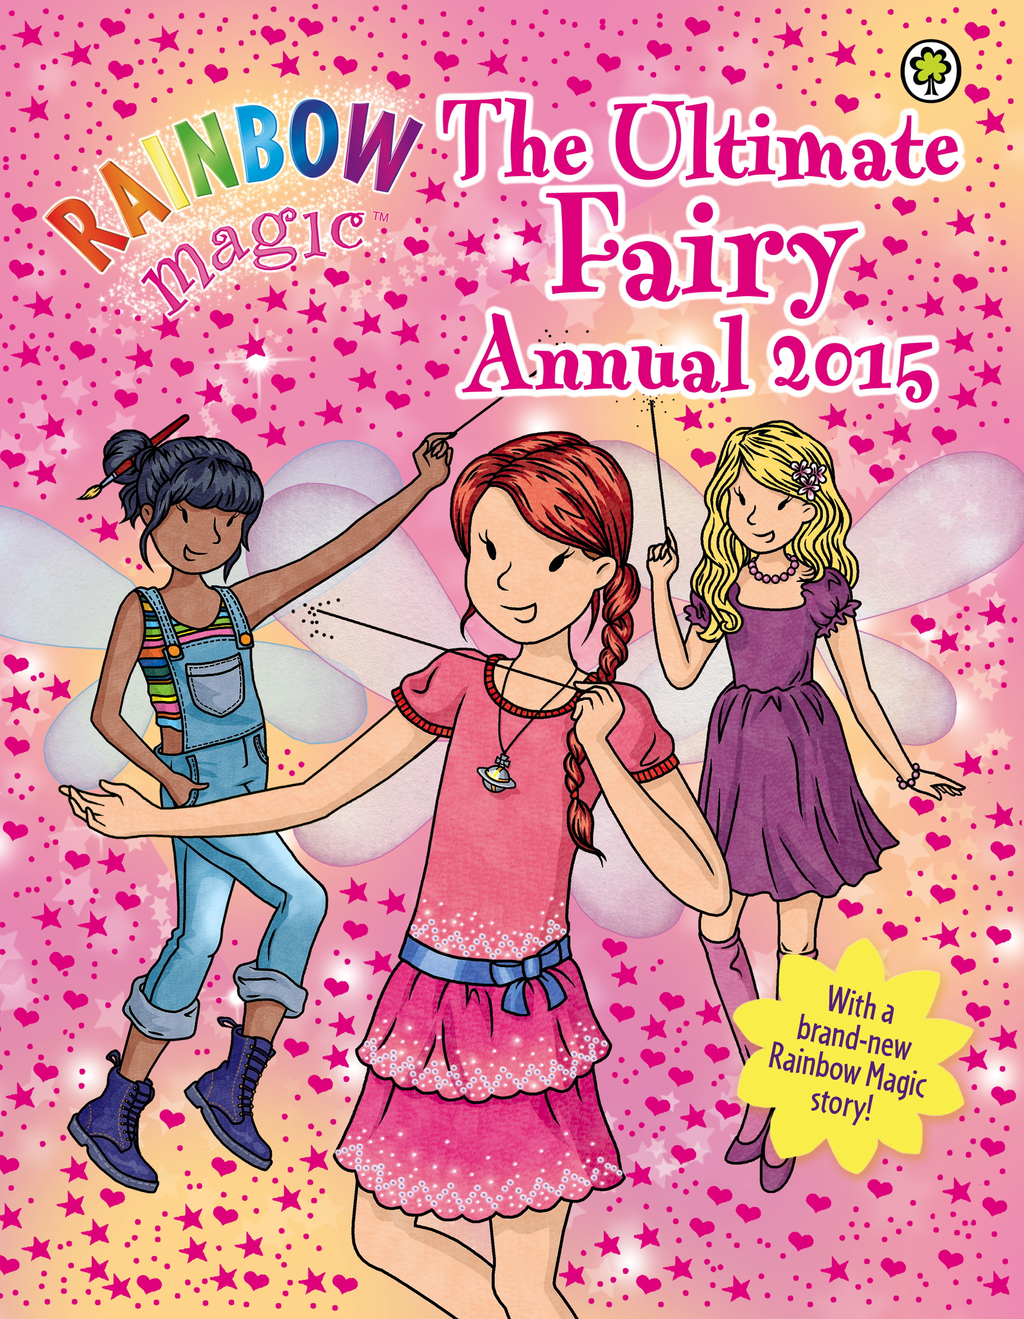 The Ultimate Fairy Annual 2015